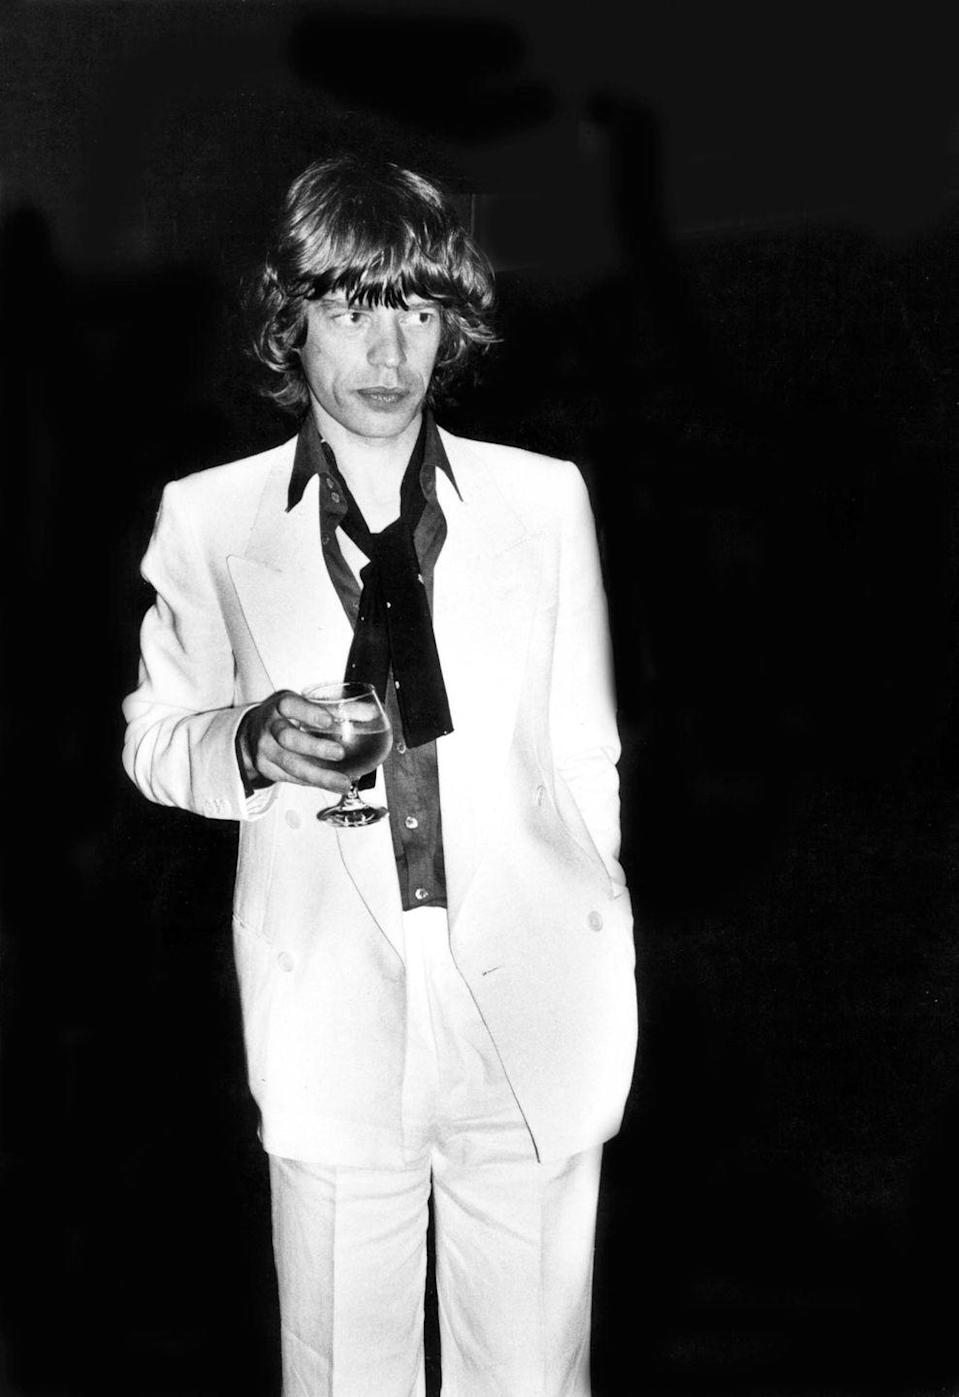 <p>Mick Jagger at Studio 54 for Bianca Jagger's birthday party in May 1977.</p>